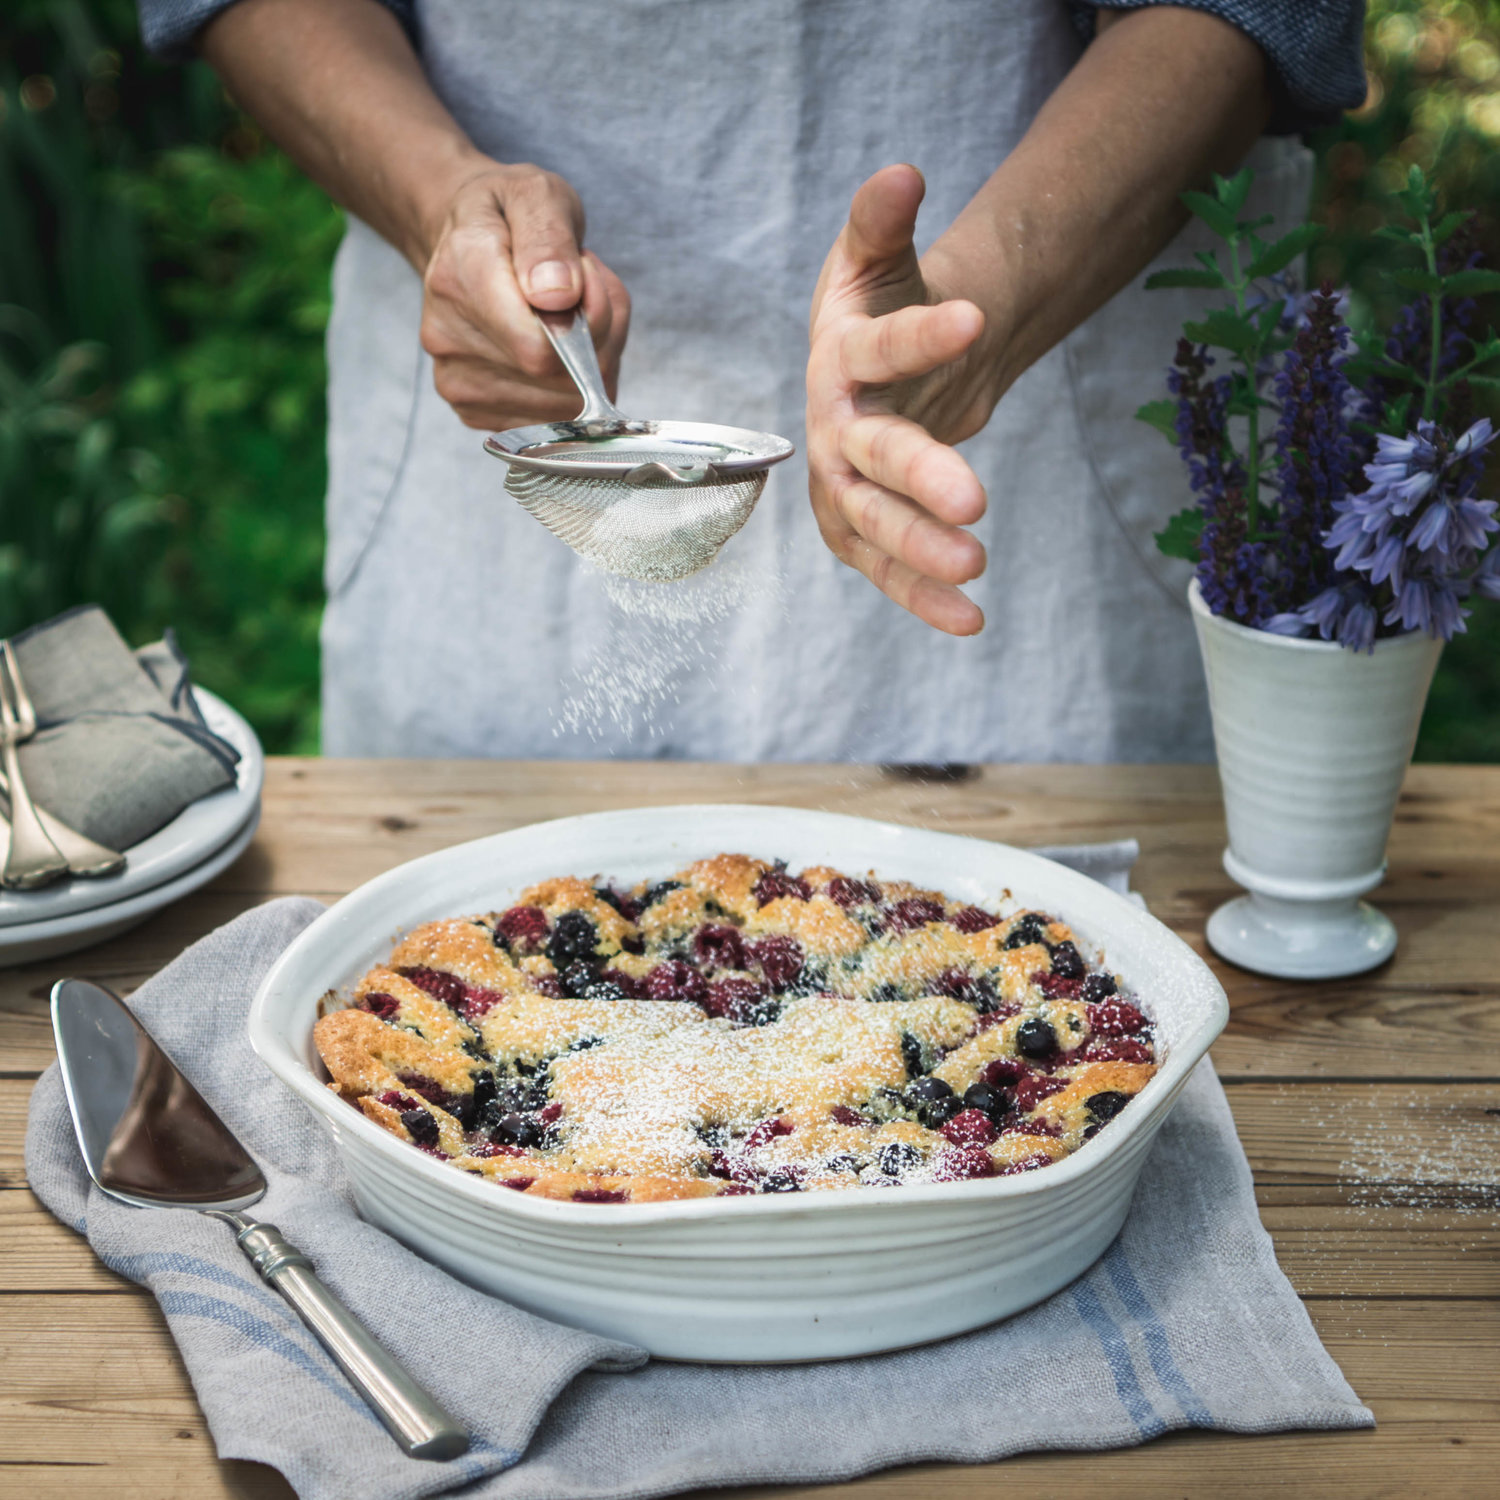 - Often served alongside late afternoon Sunday suppers with whatever fruit finds its way from berry patches, brambles, and orchards.Leftover pieces are most welcome the next morning for breakfast with unsweetened cream whipped straight from the udder.